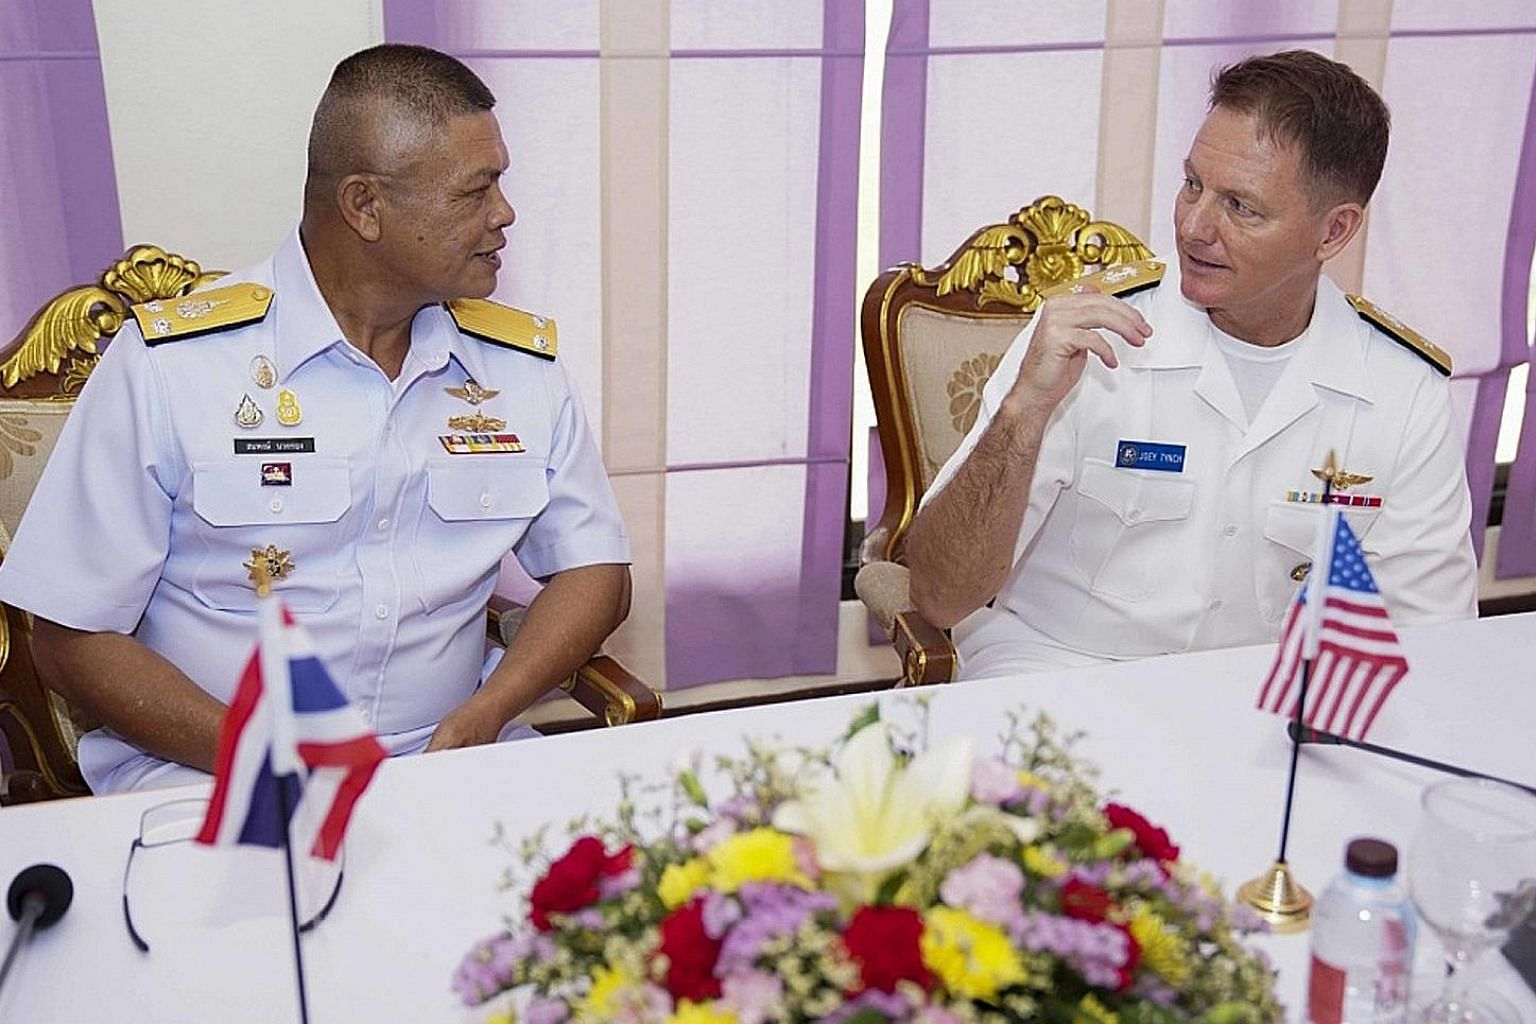 US Navy Rear Admiral Joey Tynch (right) with Royal Thai Navy Rear Admiral Sompong Narkthong during the Asean-US Maritime Exercise on Monday. PHOTO: US NAVY